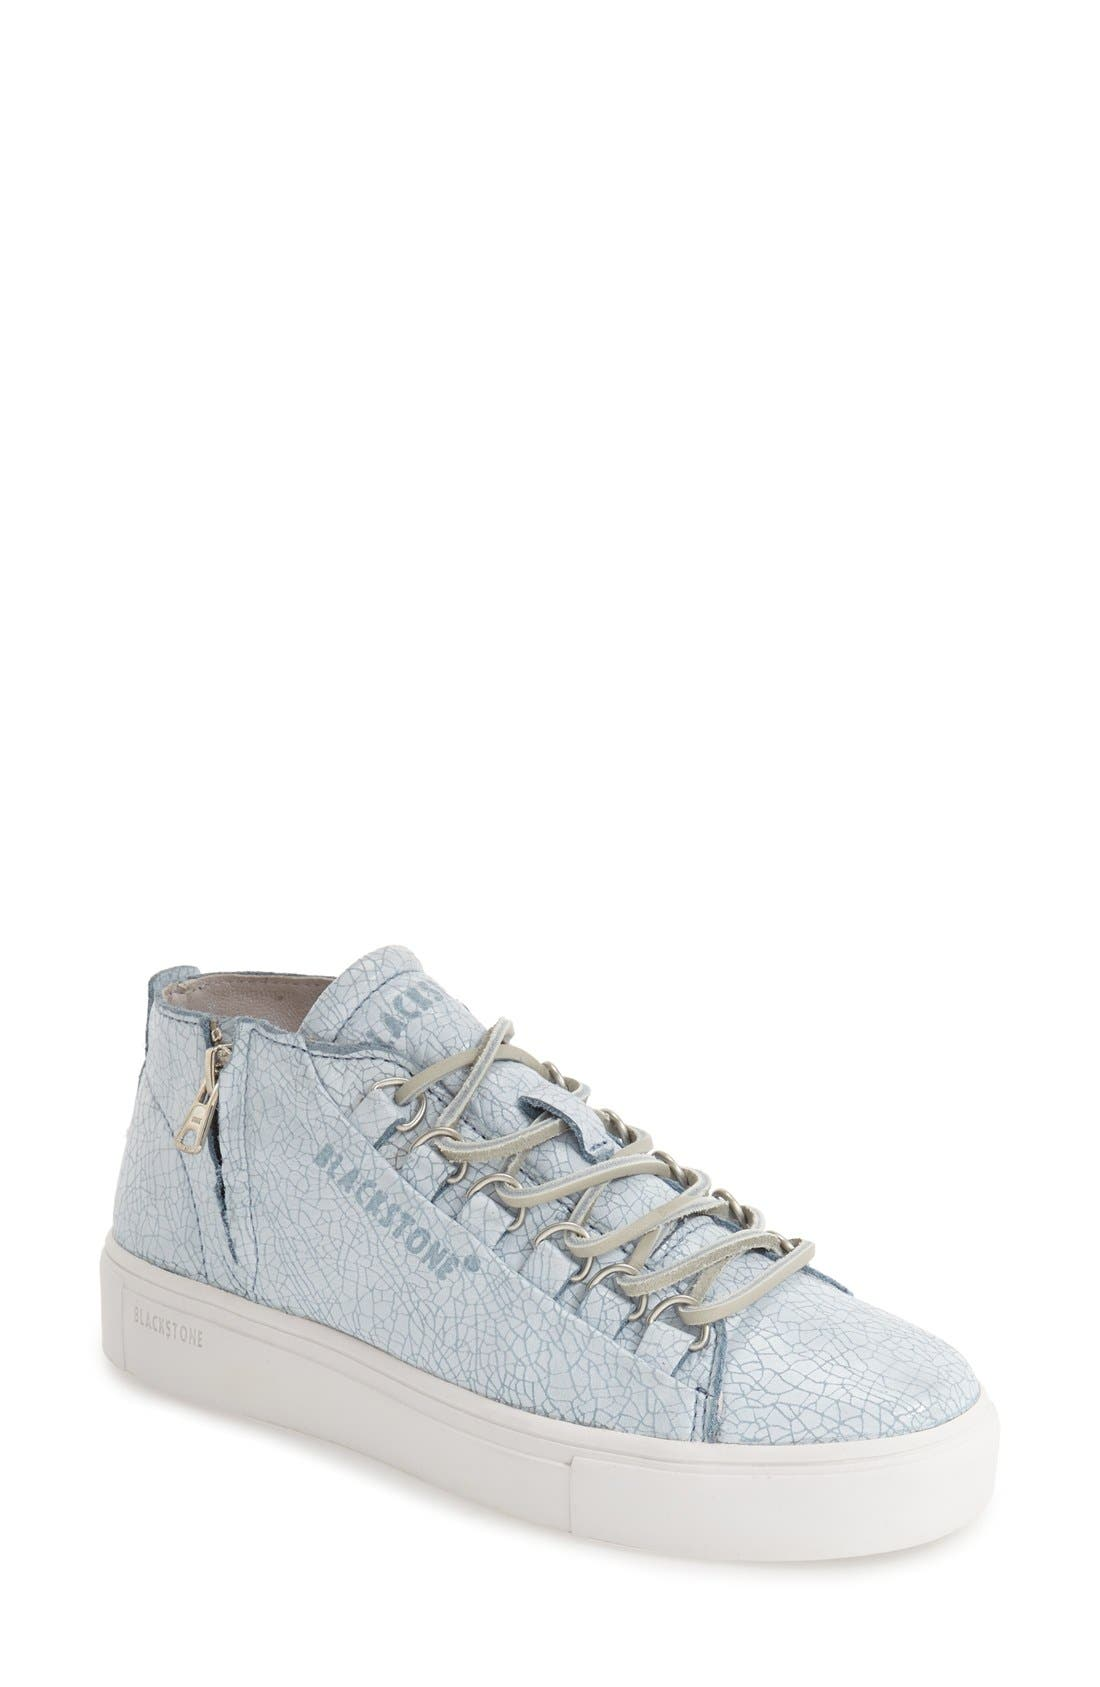 'LL60' Midi Sneaker,                         Main,                         color, BLUE/ WHITE LEATHER